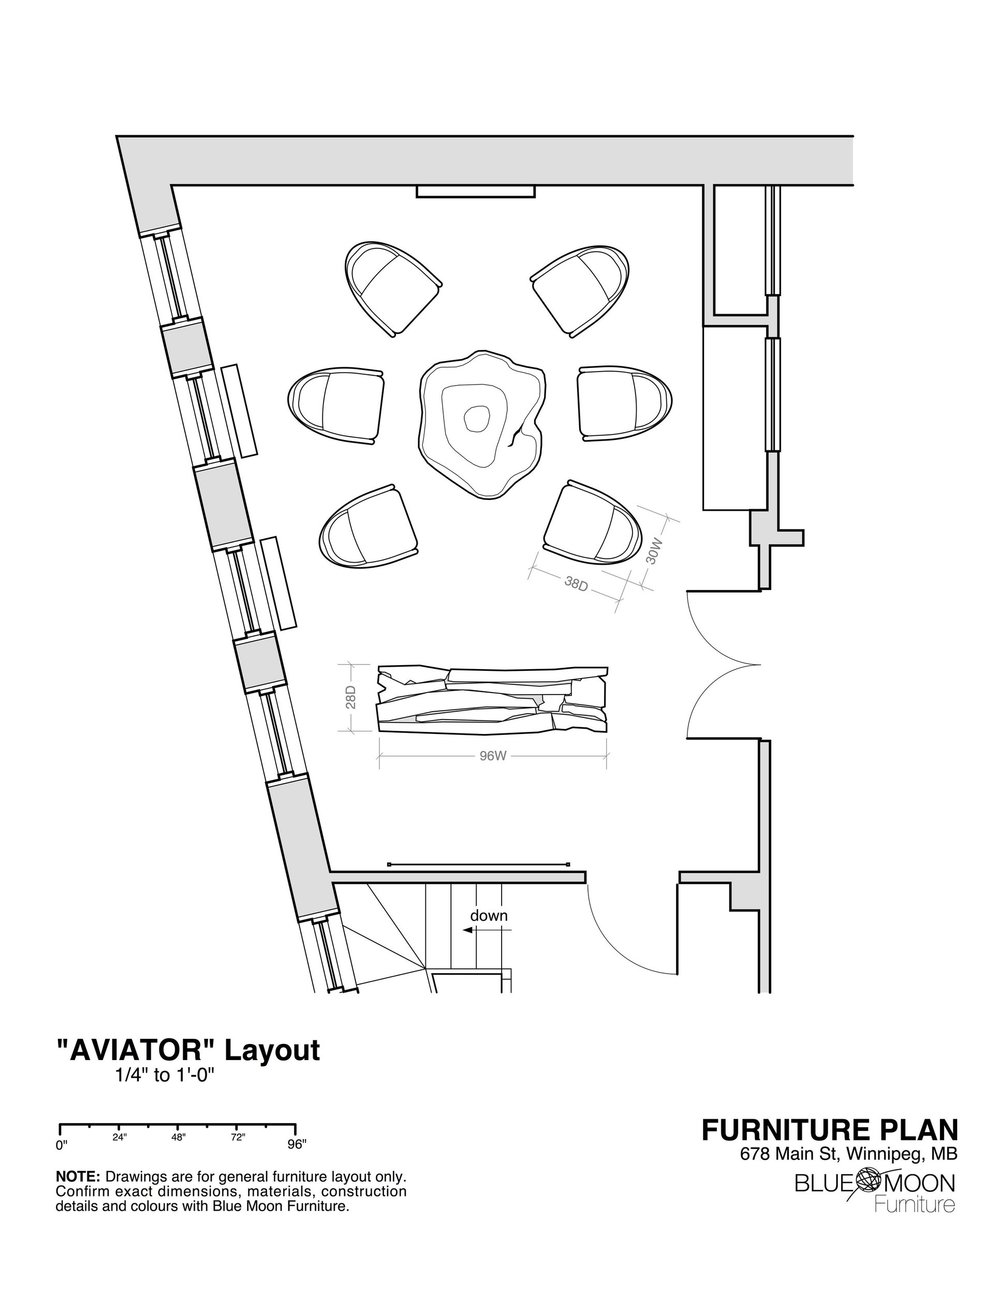 Conference Room & Furniture Layout